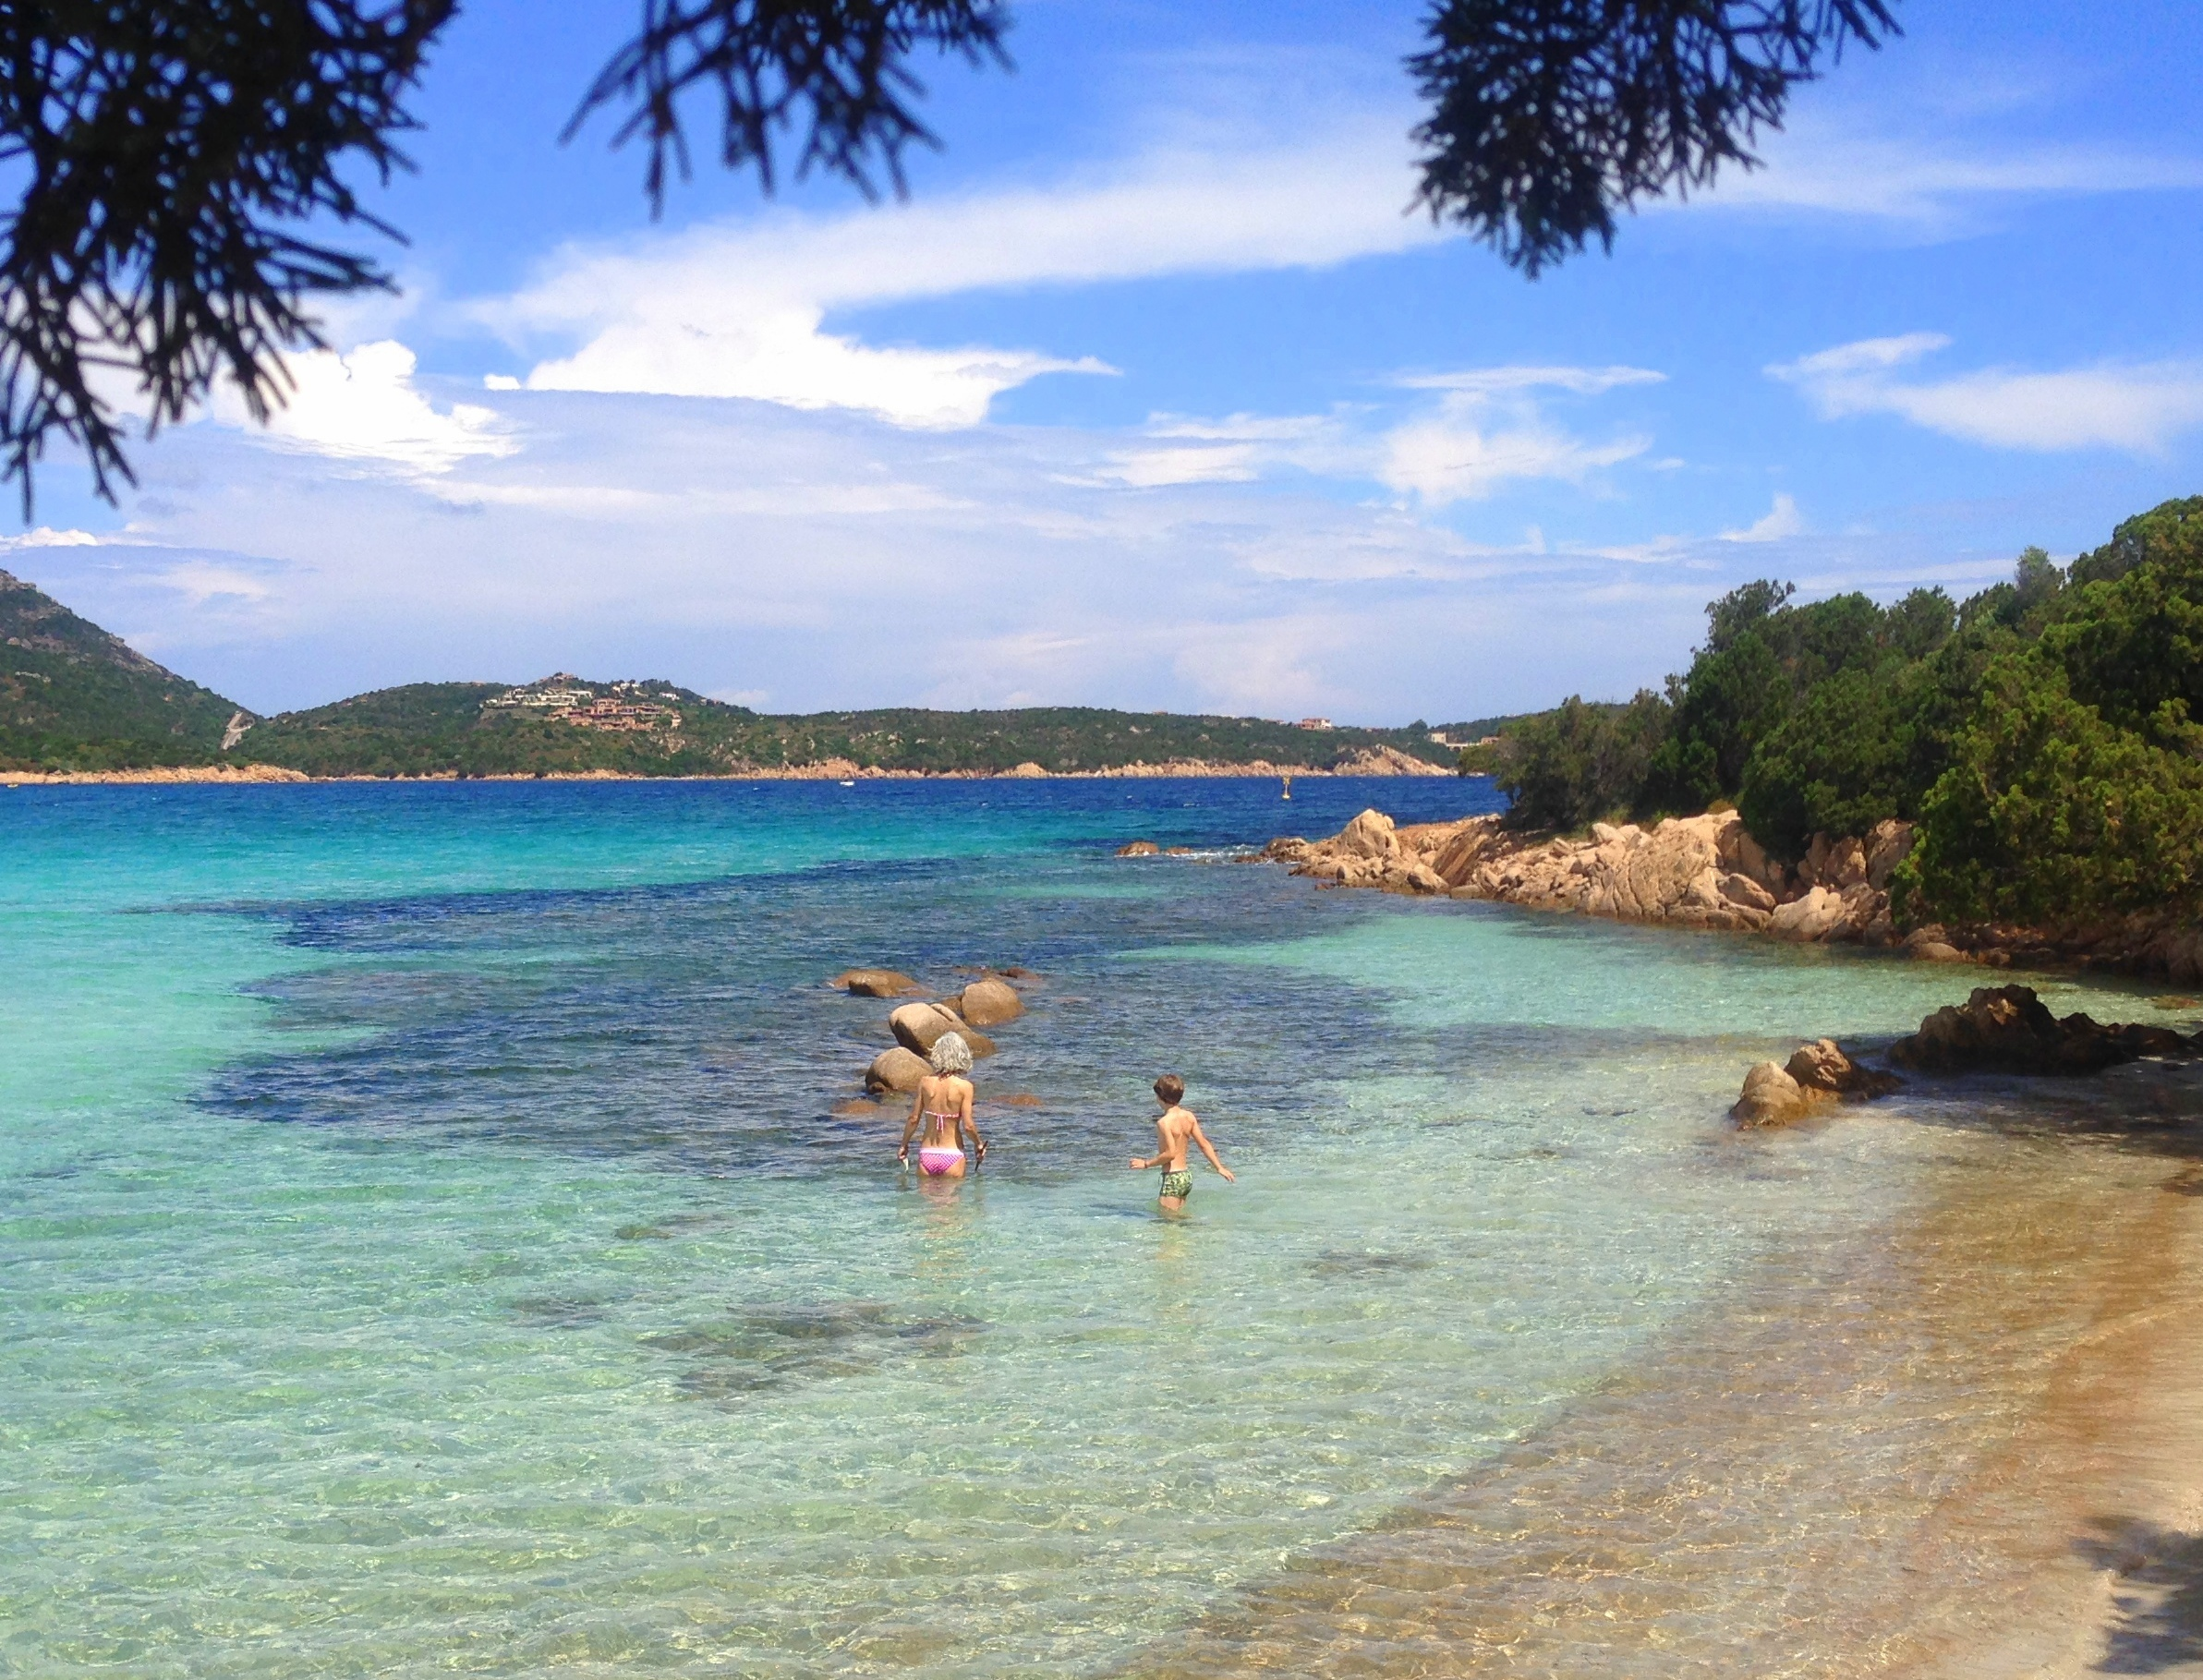 Sardinia is justifiably famous for its beaches. You'll also find great wine and lovely driving trips, especially if you rent a moped!